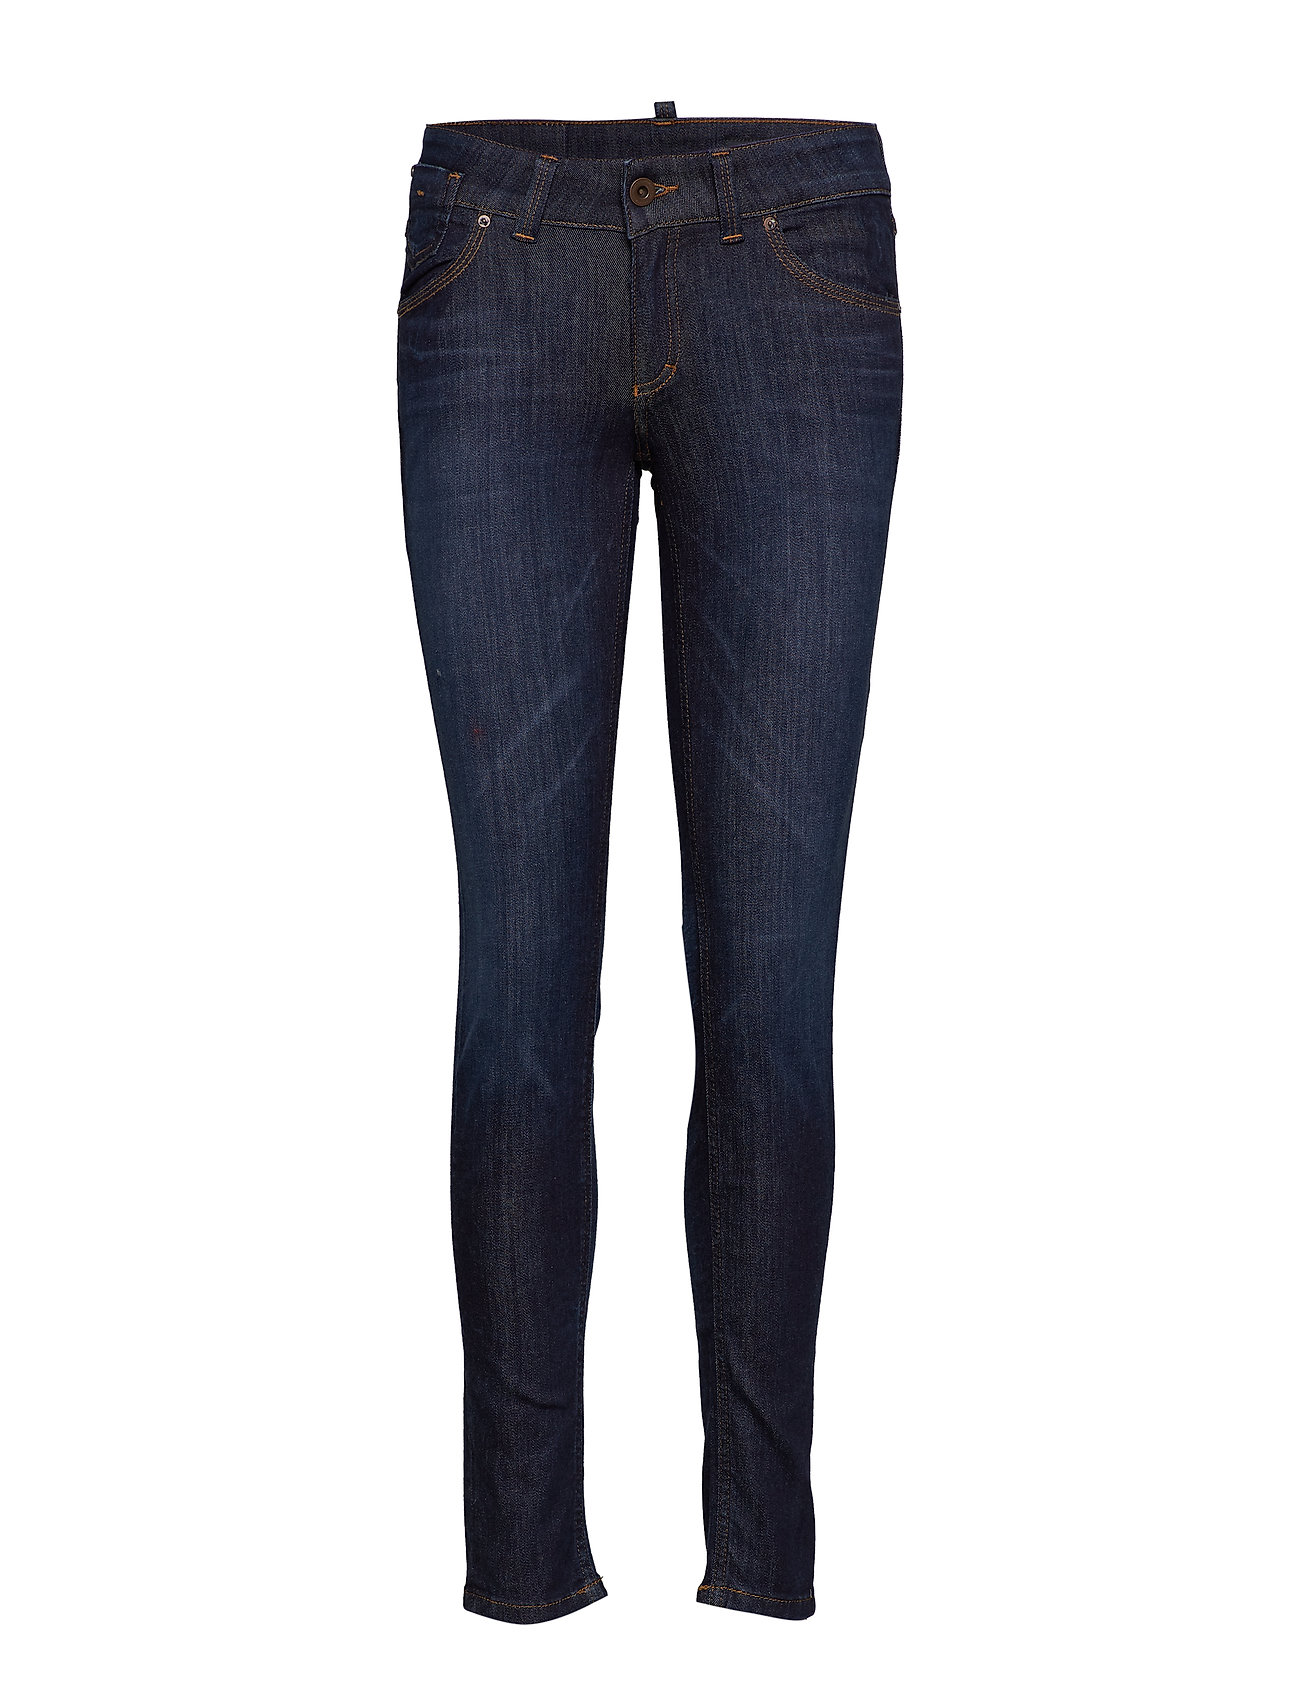 Marc O'Polo Denim Trousers - LIVERPOOL WASH